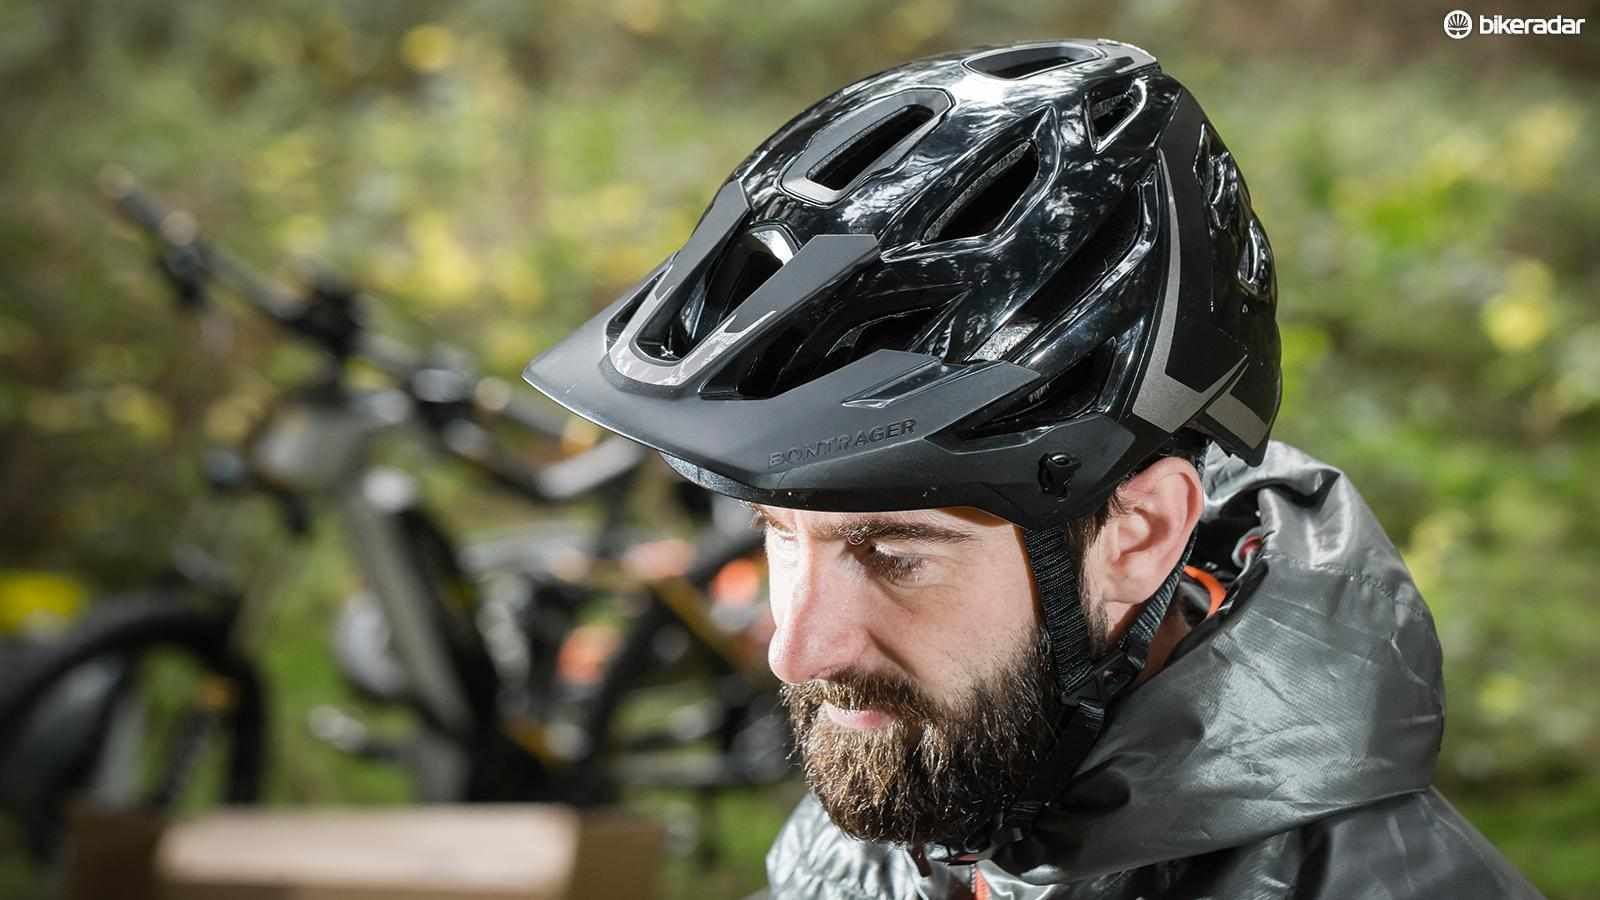 Bontrager's Lithos helmet is a good performer, but is heavier than some of the competition